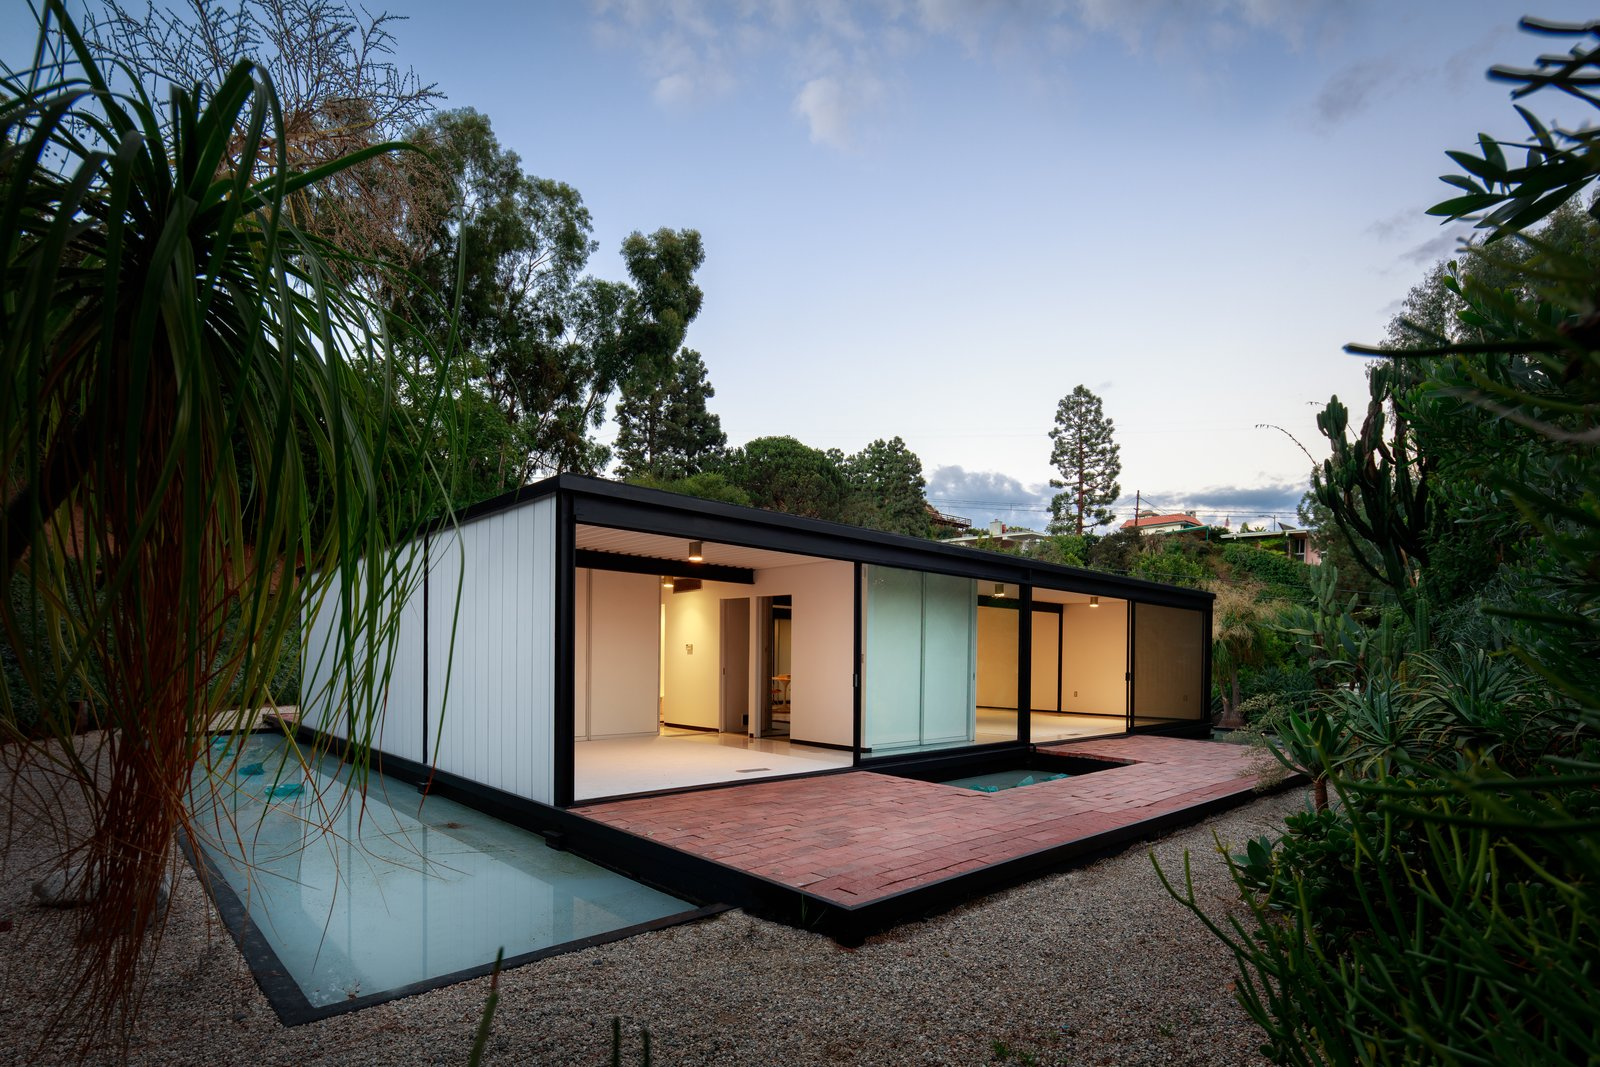 Exterior, Mid-Century, Flat, Metal, Glass, and House The deceptively simple design makes it a well-recognized masterpiece of midcentury design.   Best Exterior Metal Mid-Century Flat Photos from This Pierre Koenig-Designed Case Study House Lists For $3.6M